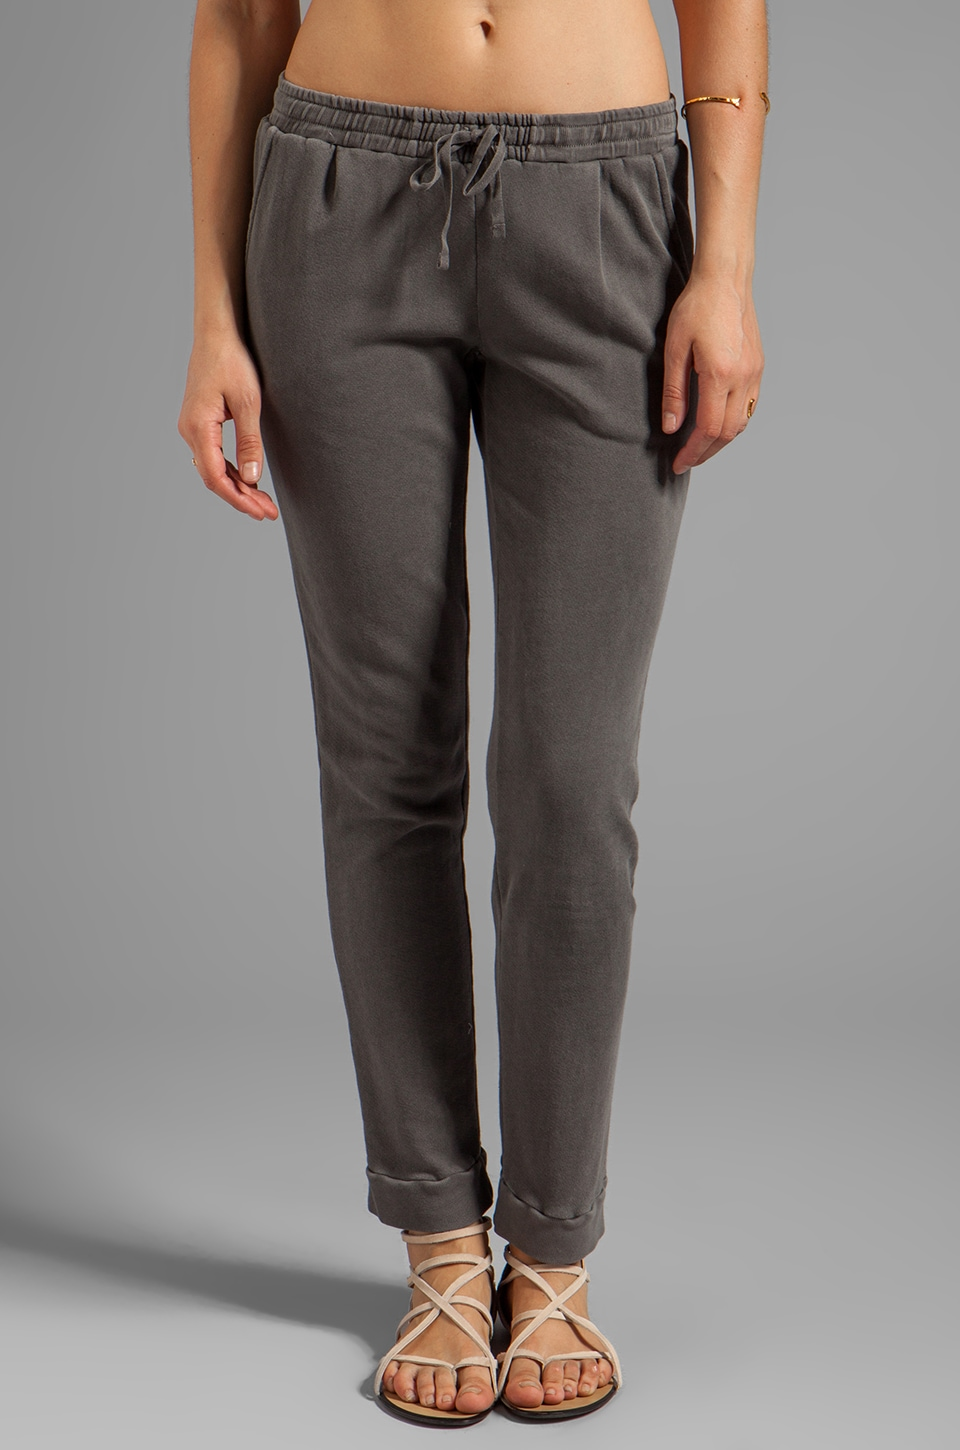 Soft Joie Grant Sweatpants in Capers